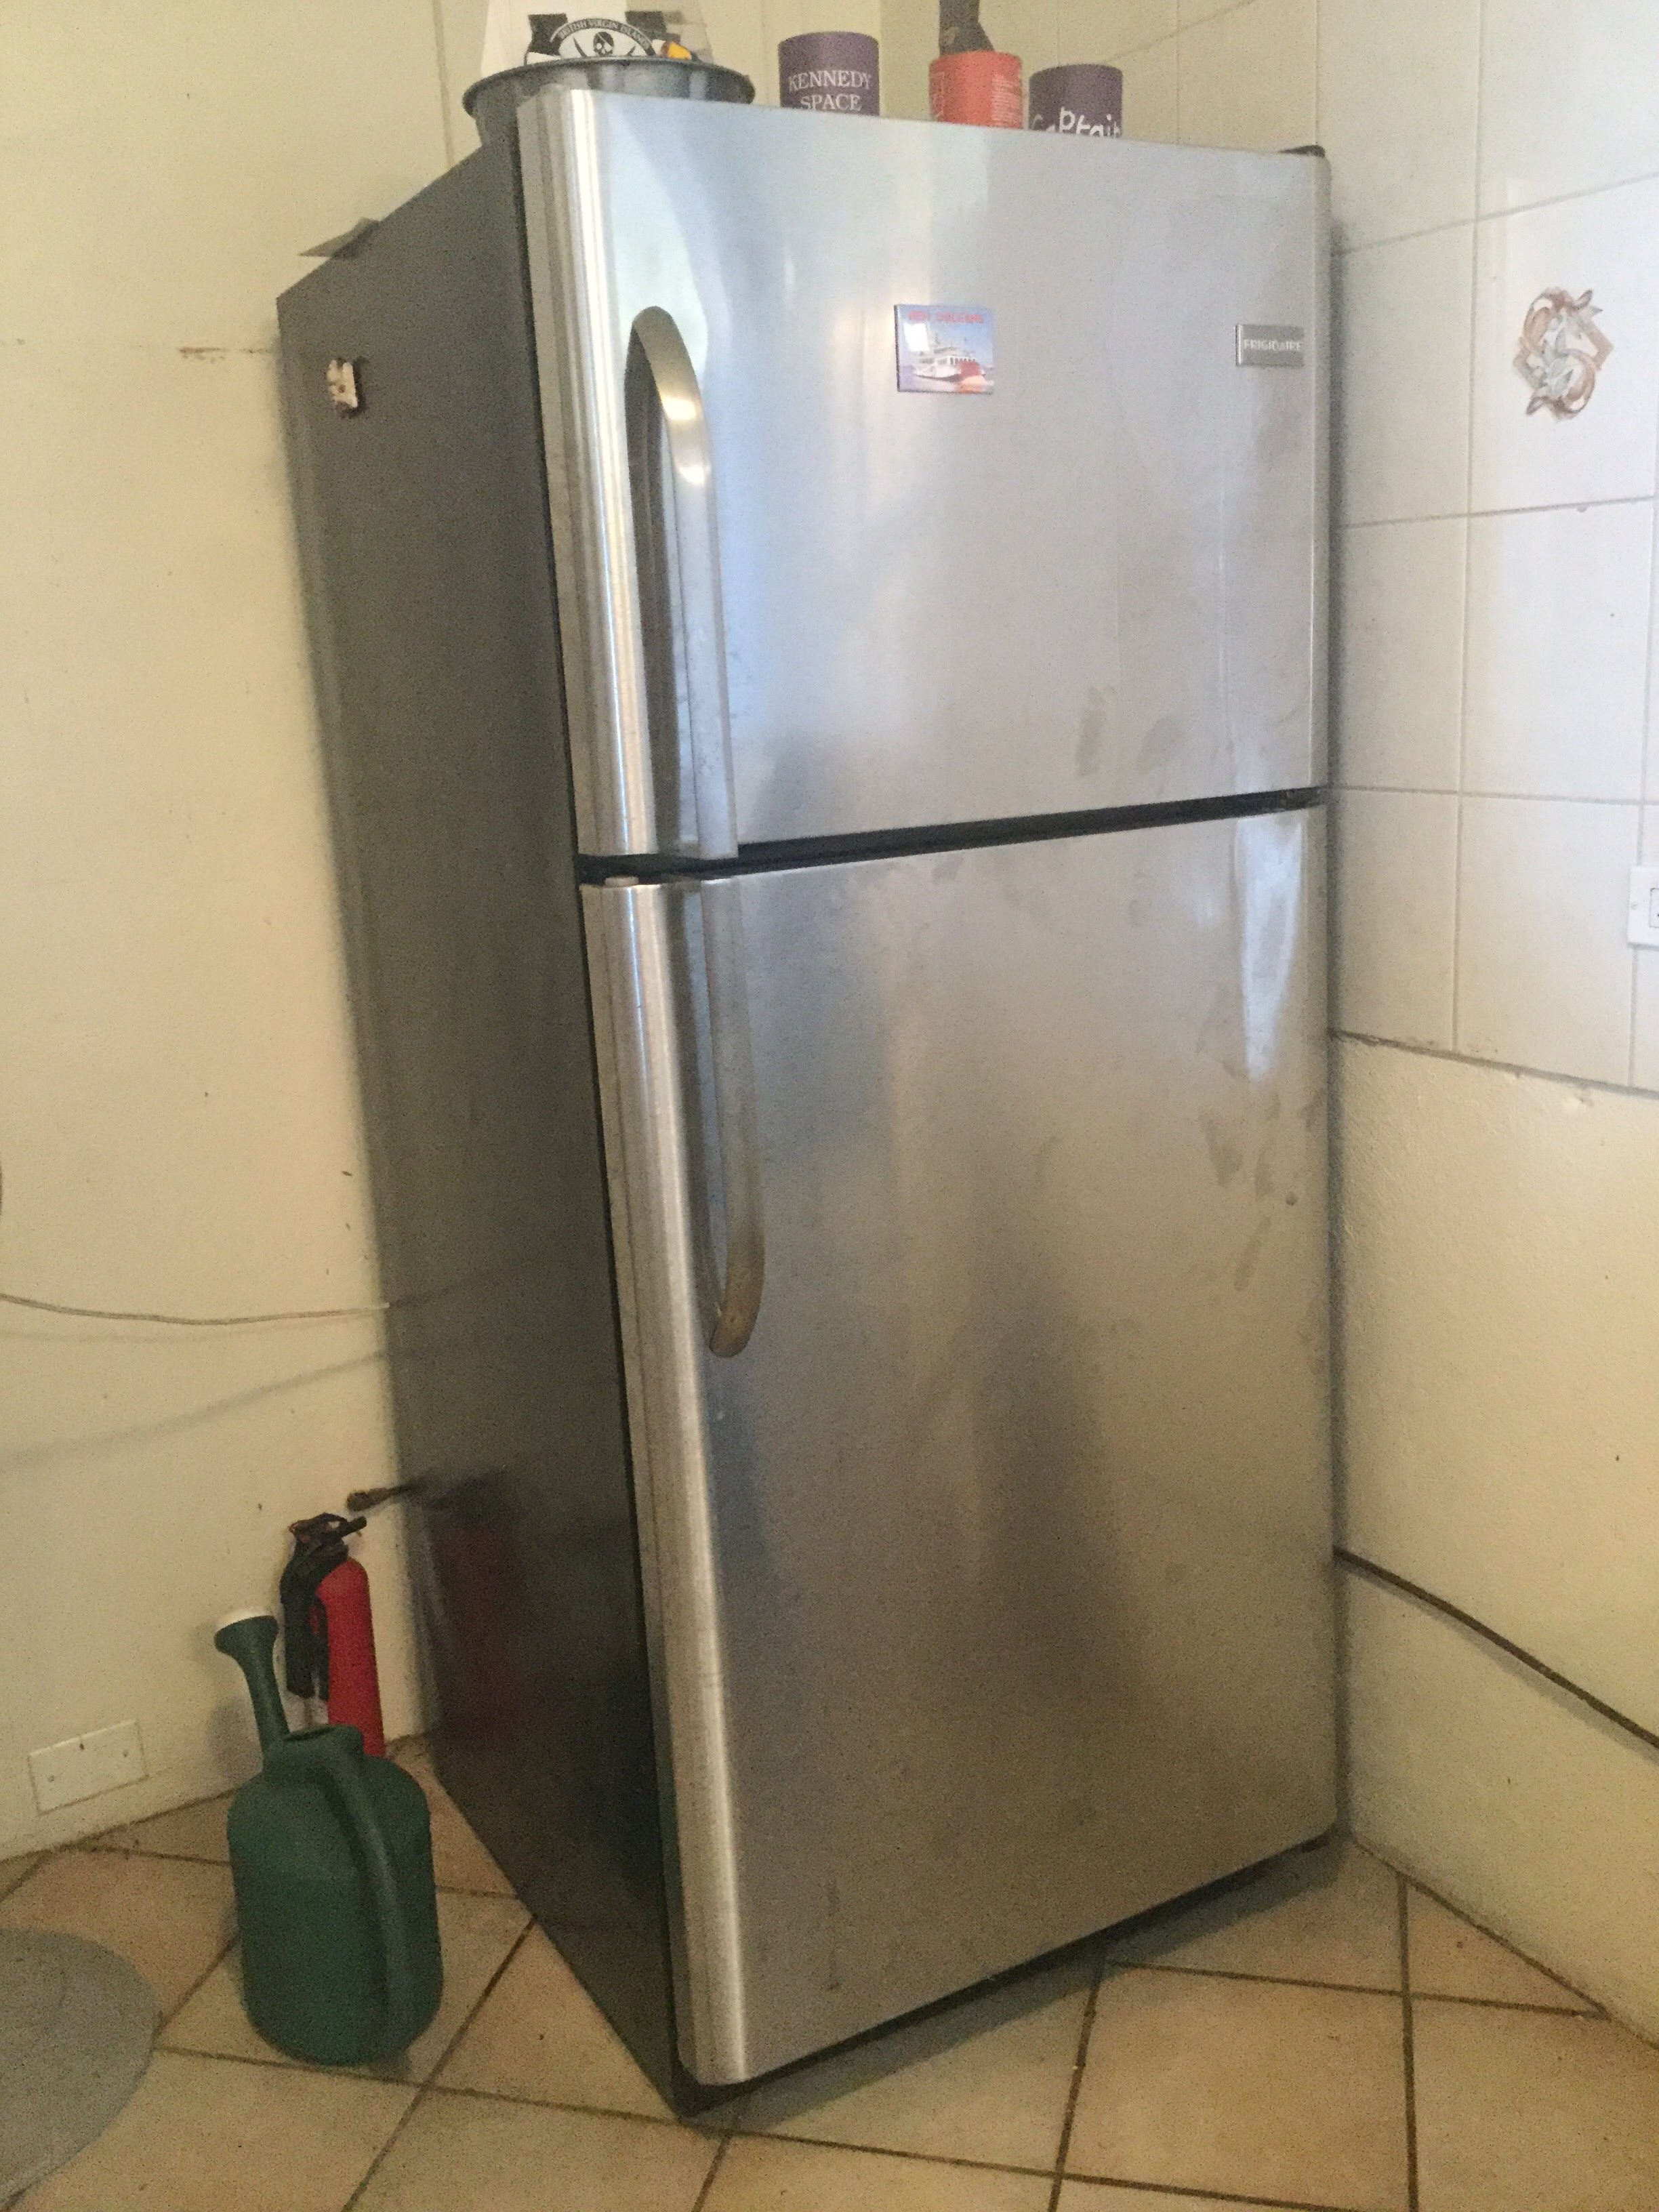 Fresh Mango donates fridge freezer